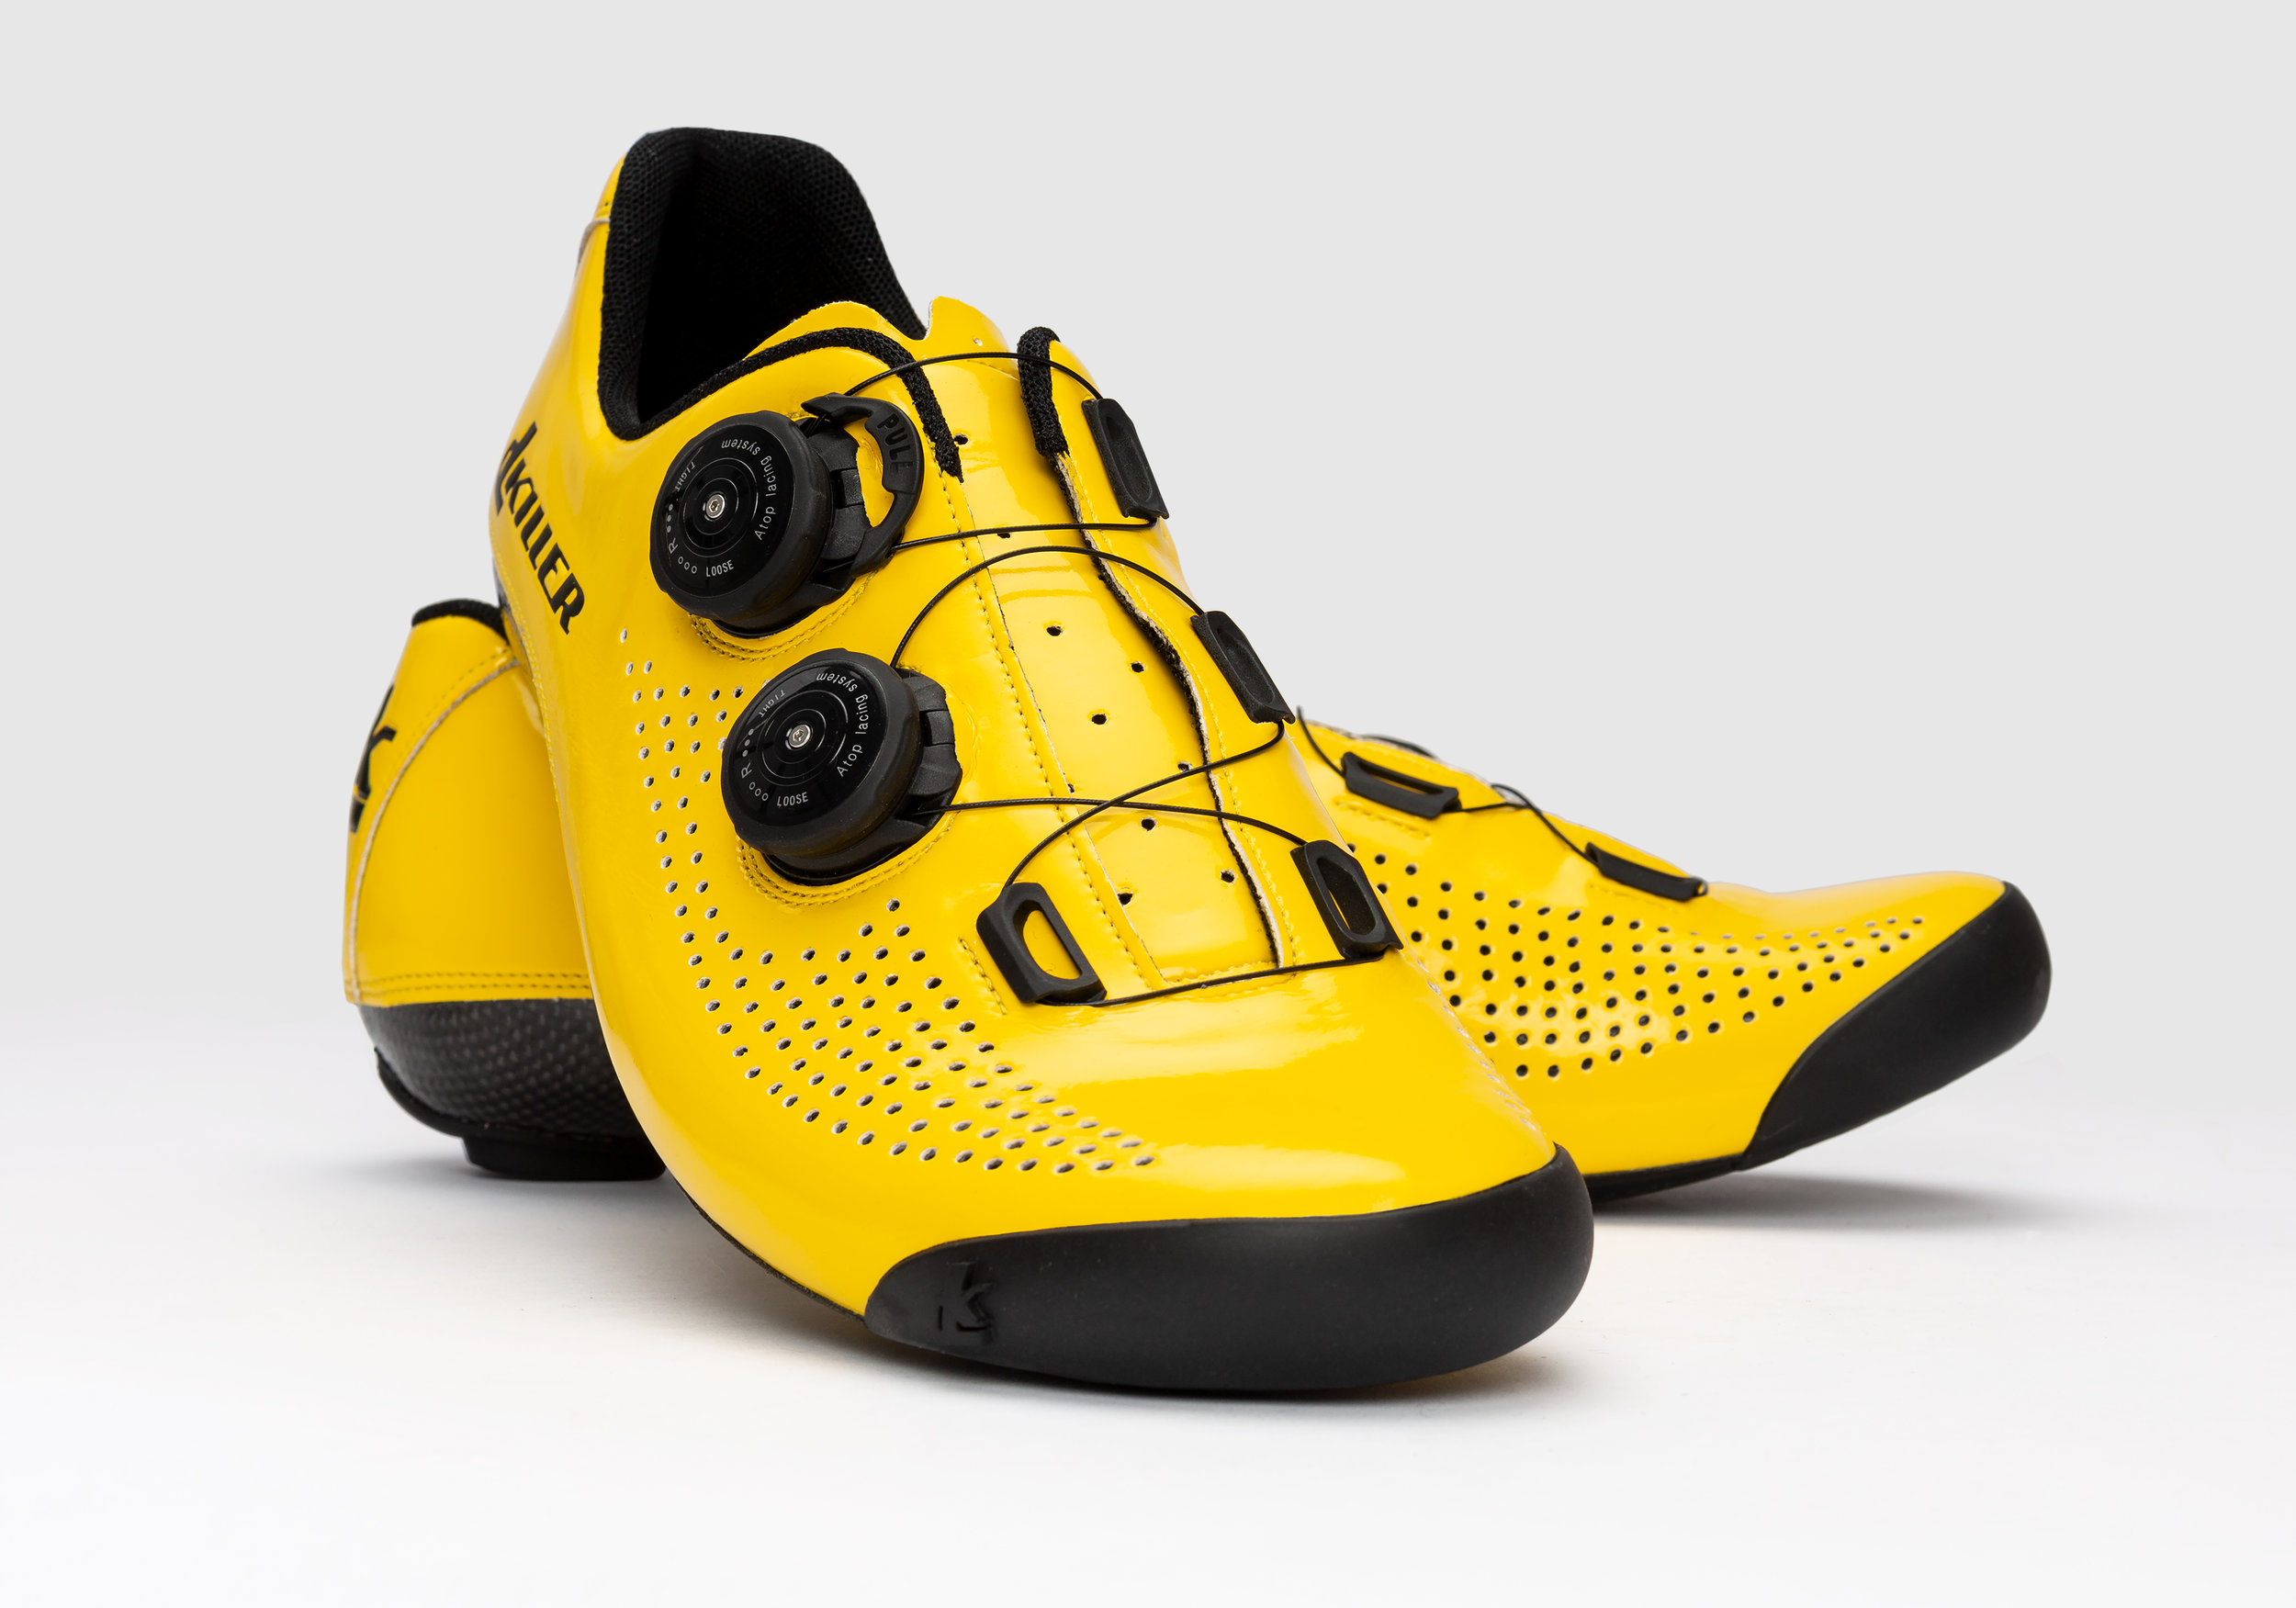 dlkiller-cycling-shoes-tdf-special.jpg